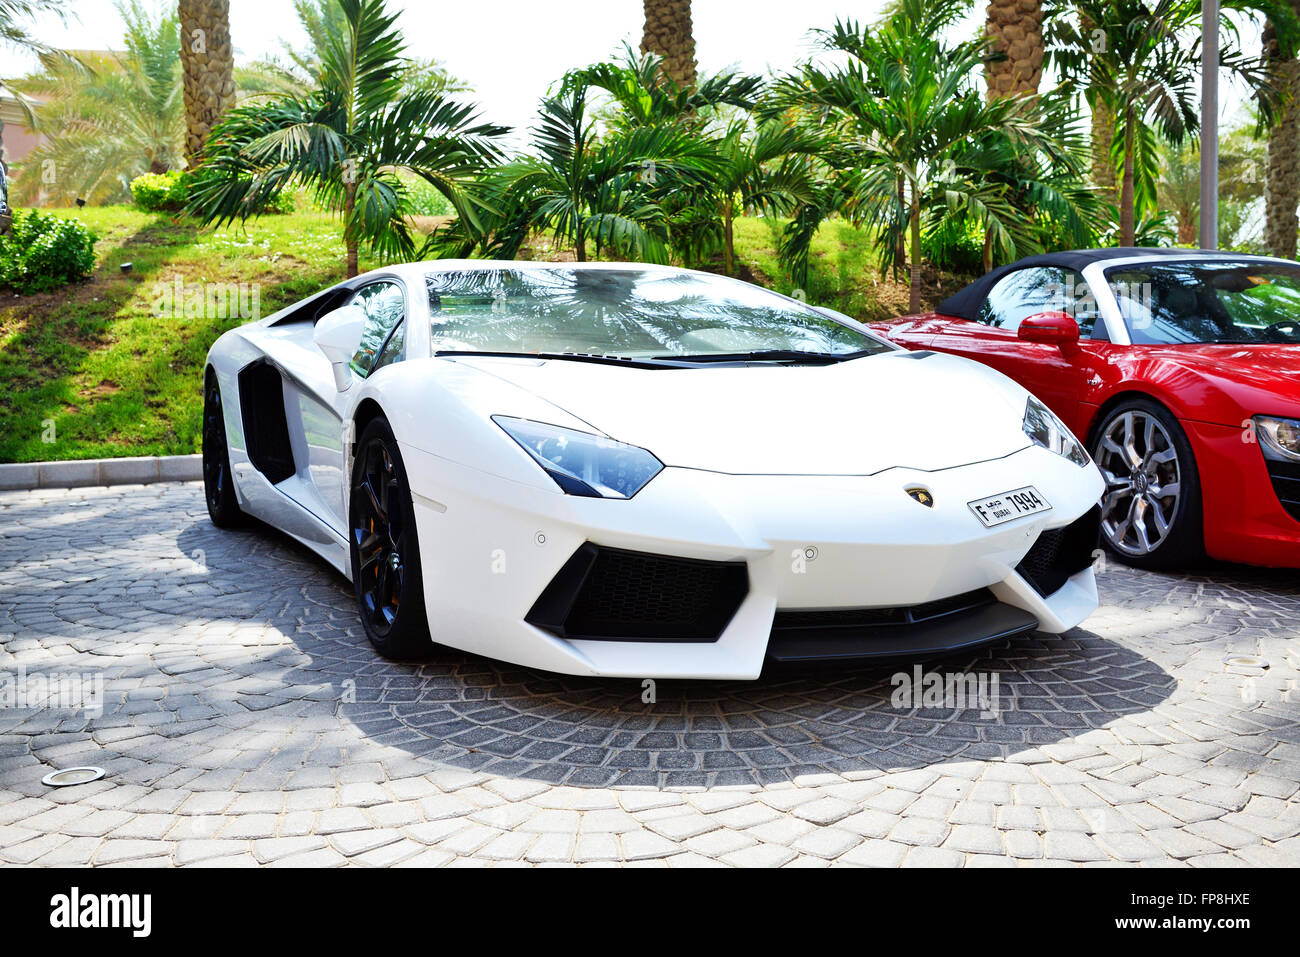 The Atlantis The Palm Hotel And Luxury Sport Cars, Dubai, UAE